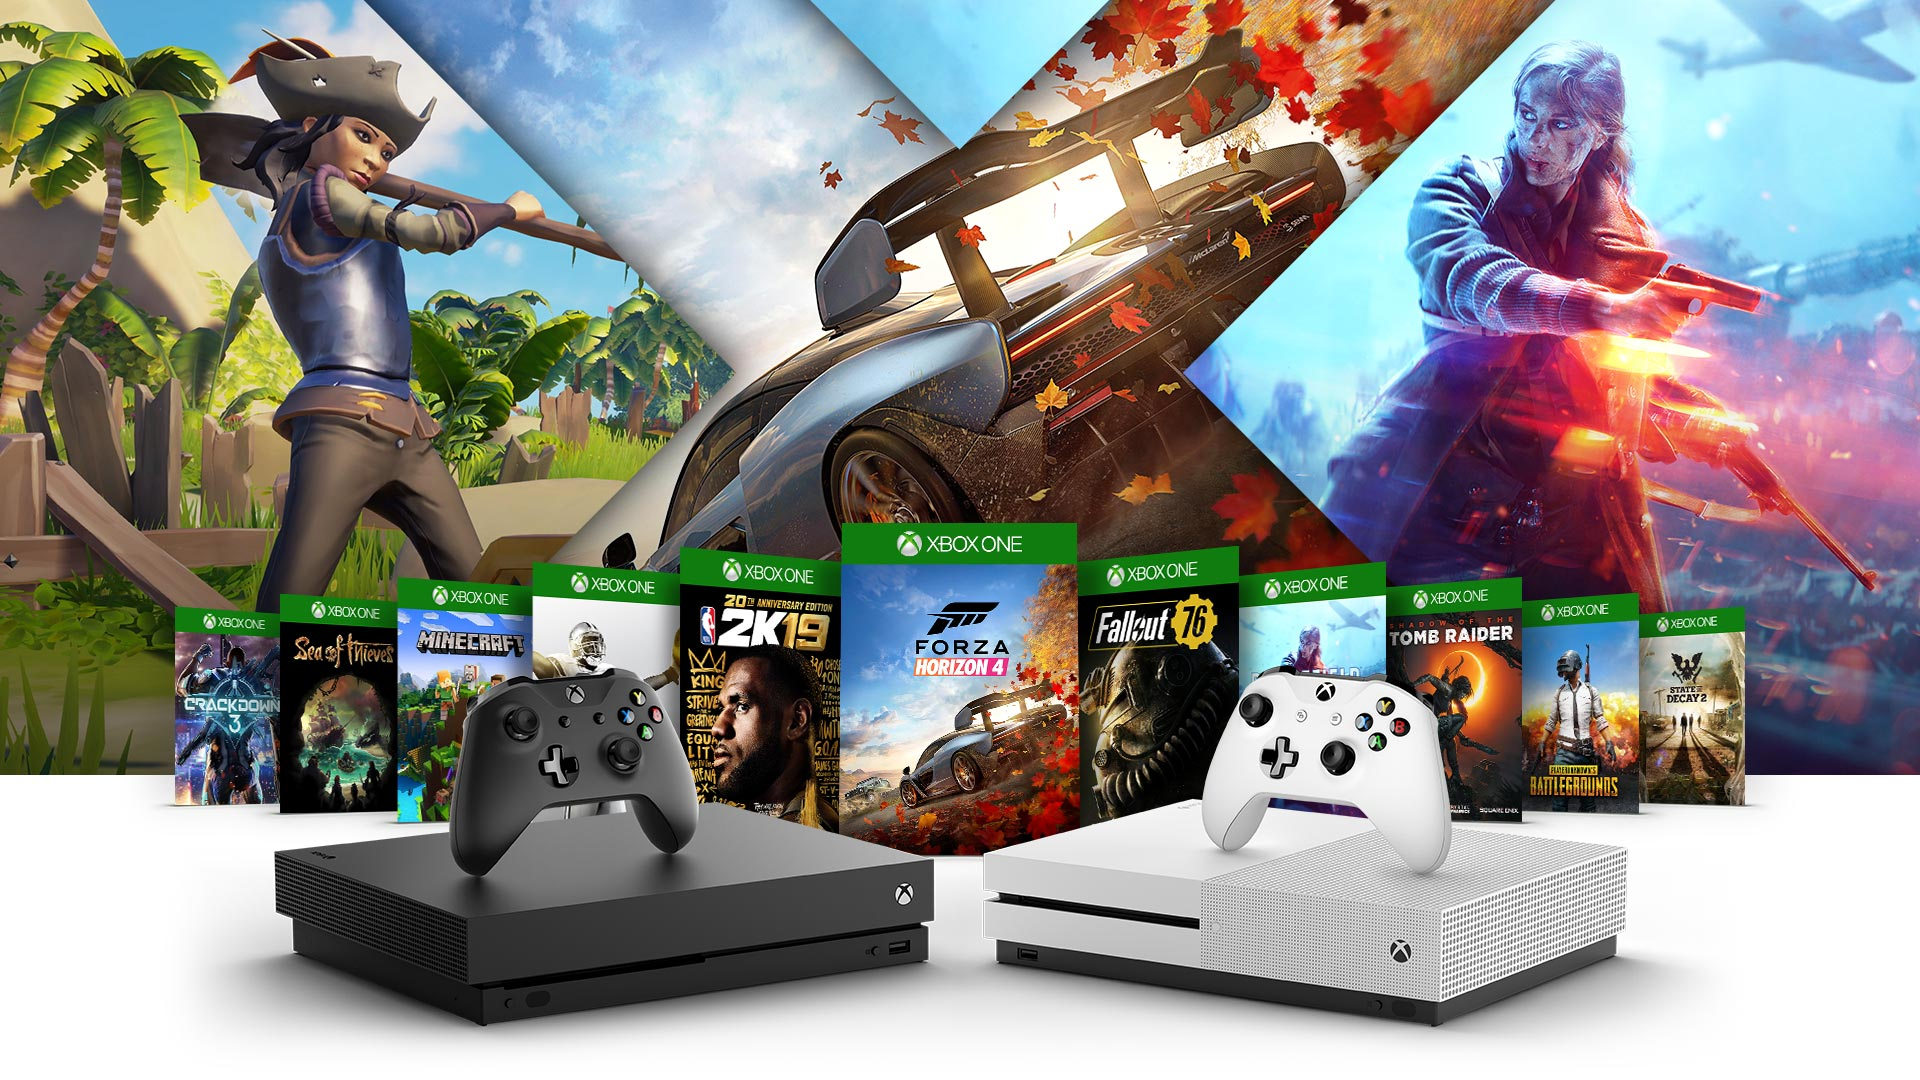 Sivusta kuvattu Xbox One X ja Xbox One S, joiden ympärillä Crackdown 3-, Sea of Thieves-, Minecraft-, Madden 19-, 2K19-, Forza Horizon 4-, Fallout 76-, Battlefield V-, Shadow of the Tomb Raider-, PlayUnknown Battlegrounds- ja State of Decay 2 -pakkausten kannet